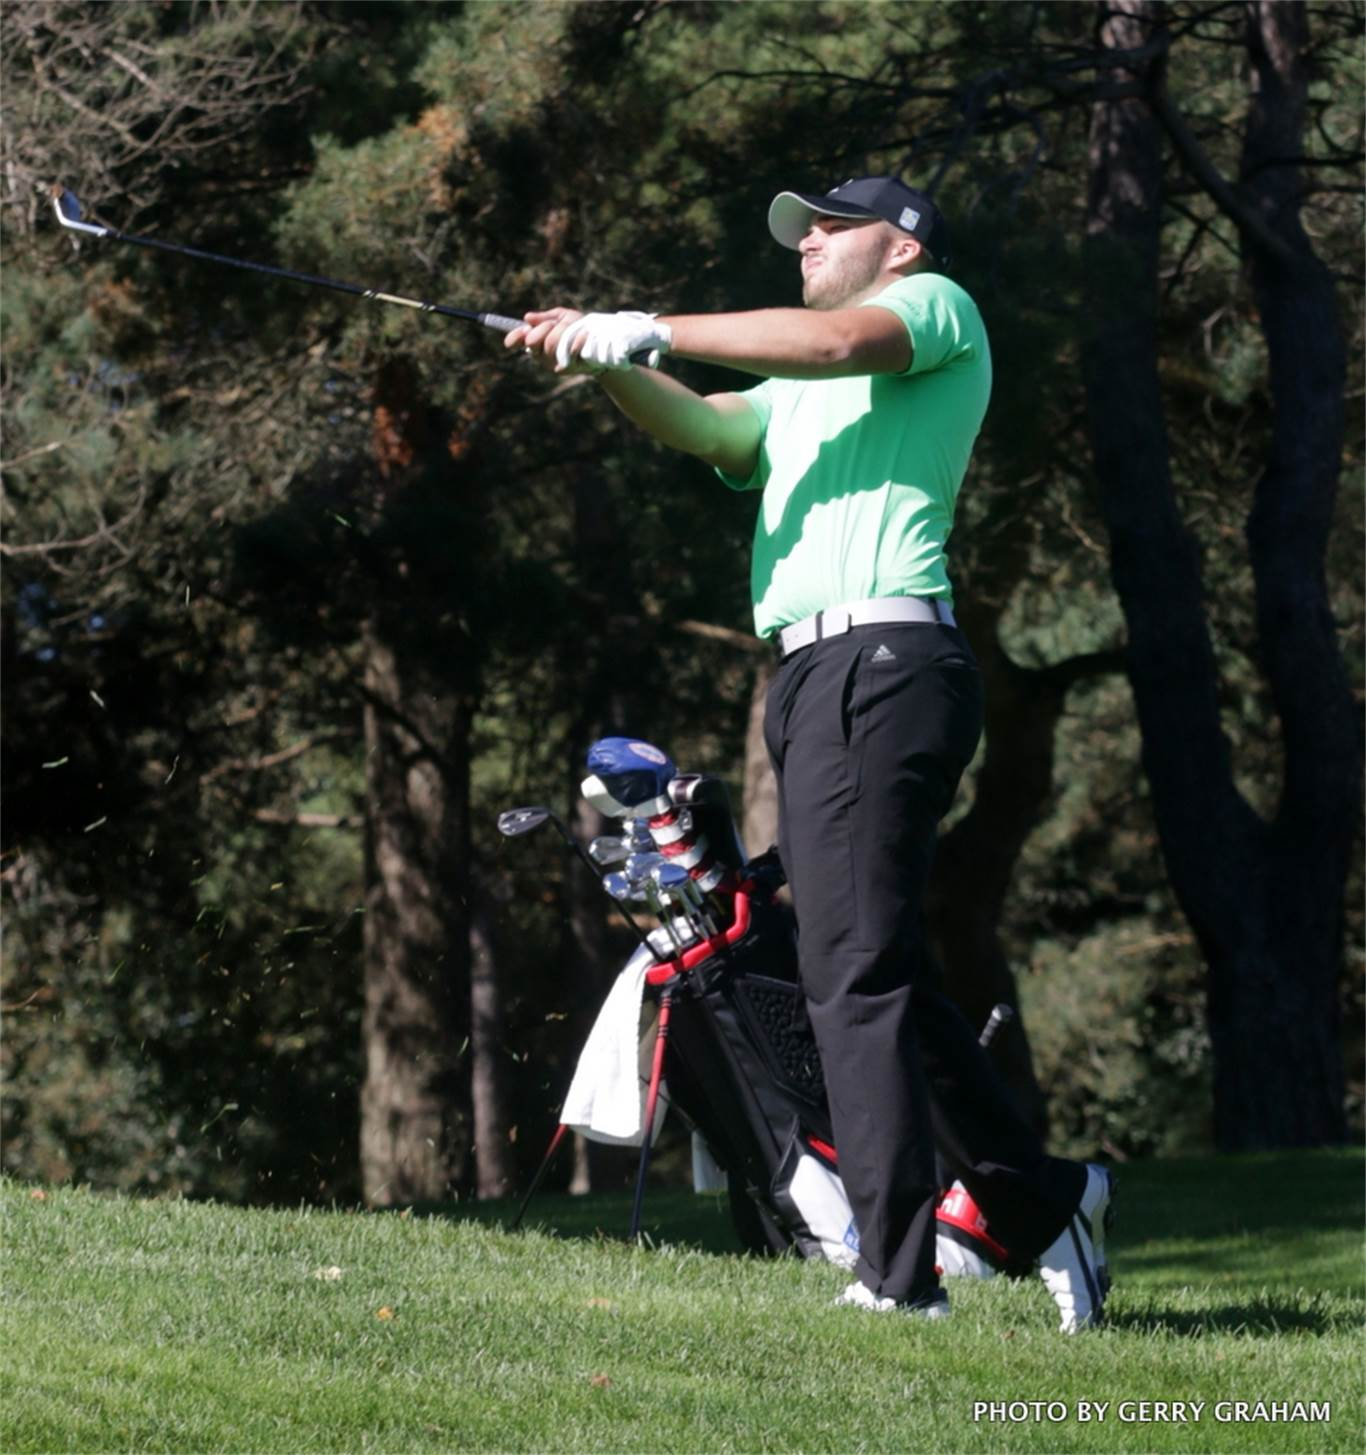 Bishop Ryan's Johnny Travale was offered an NCAA golf scholarship by Kent State University last year. And recently, Golf Canada added Travale to its National Junior Development Squad. Photo by Gerry Graham.